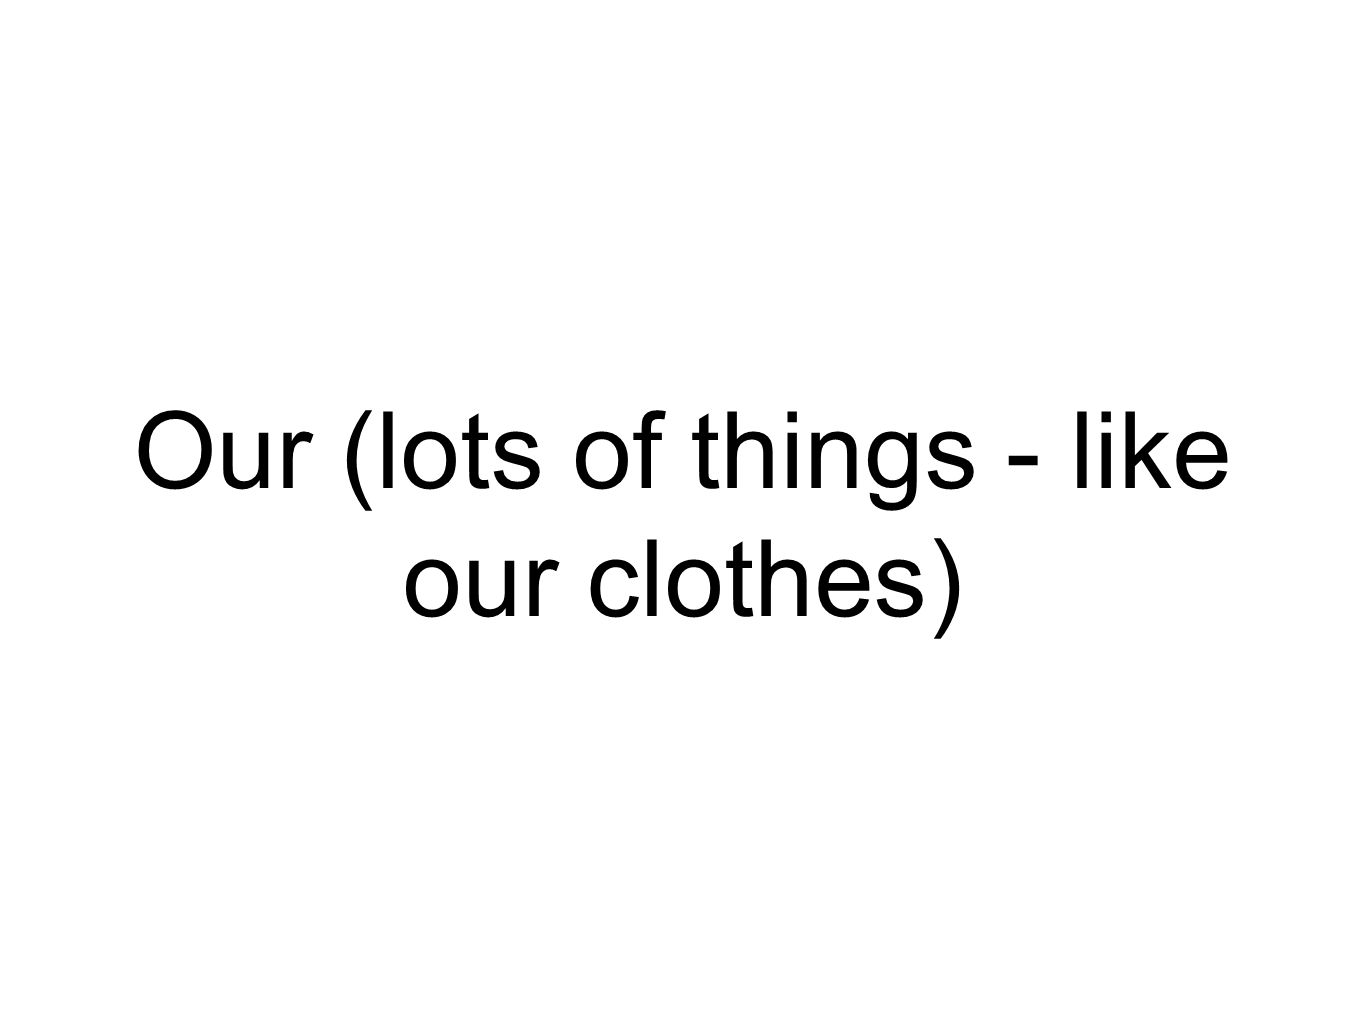 Our (lots of things - like our clothes)